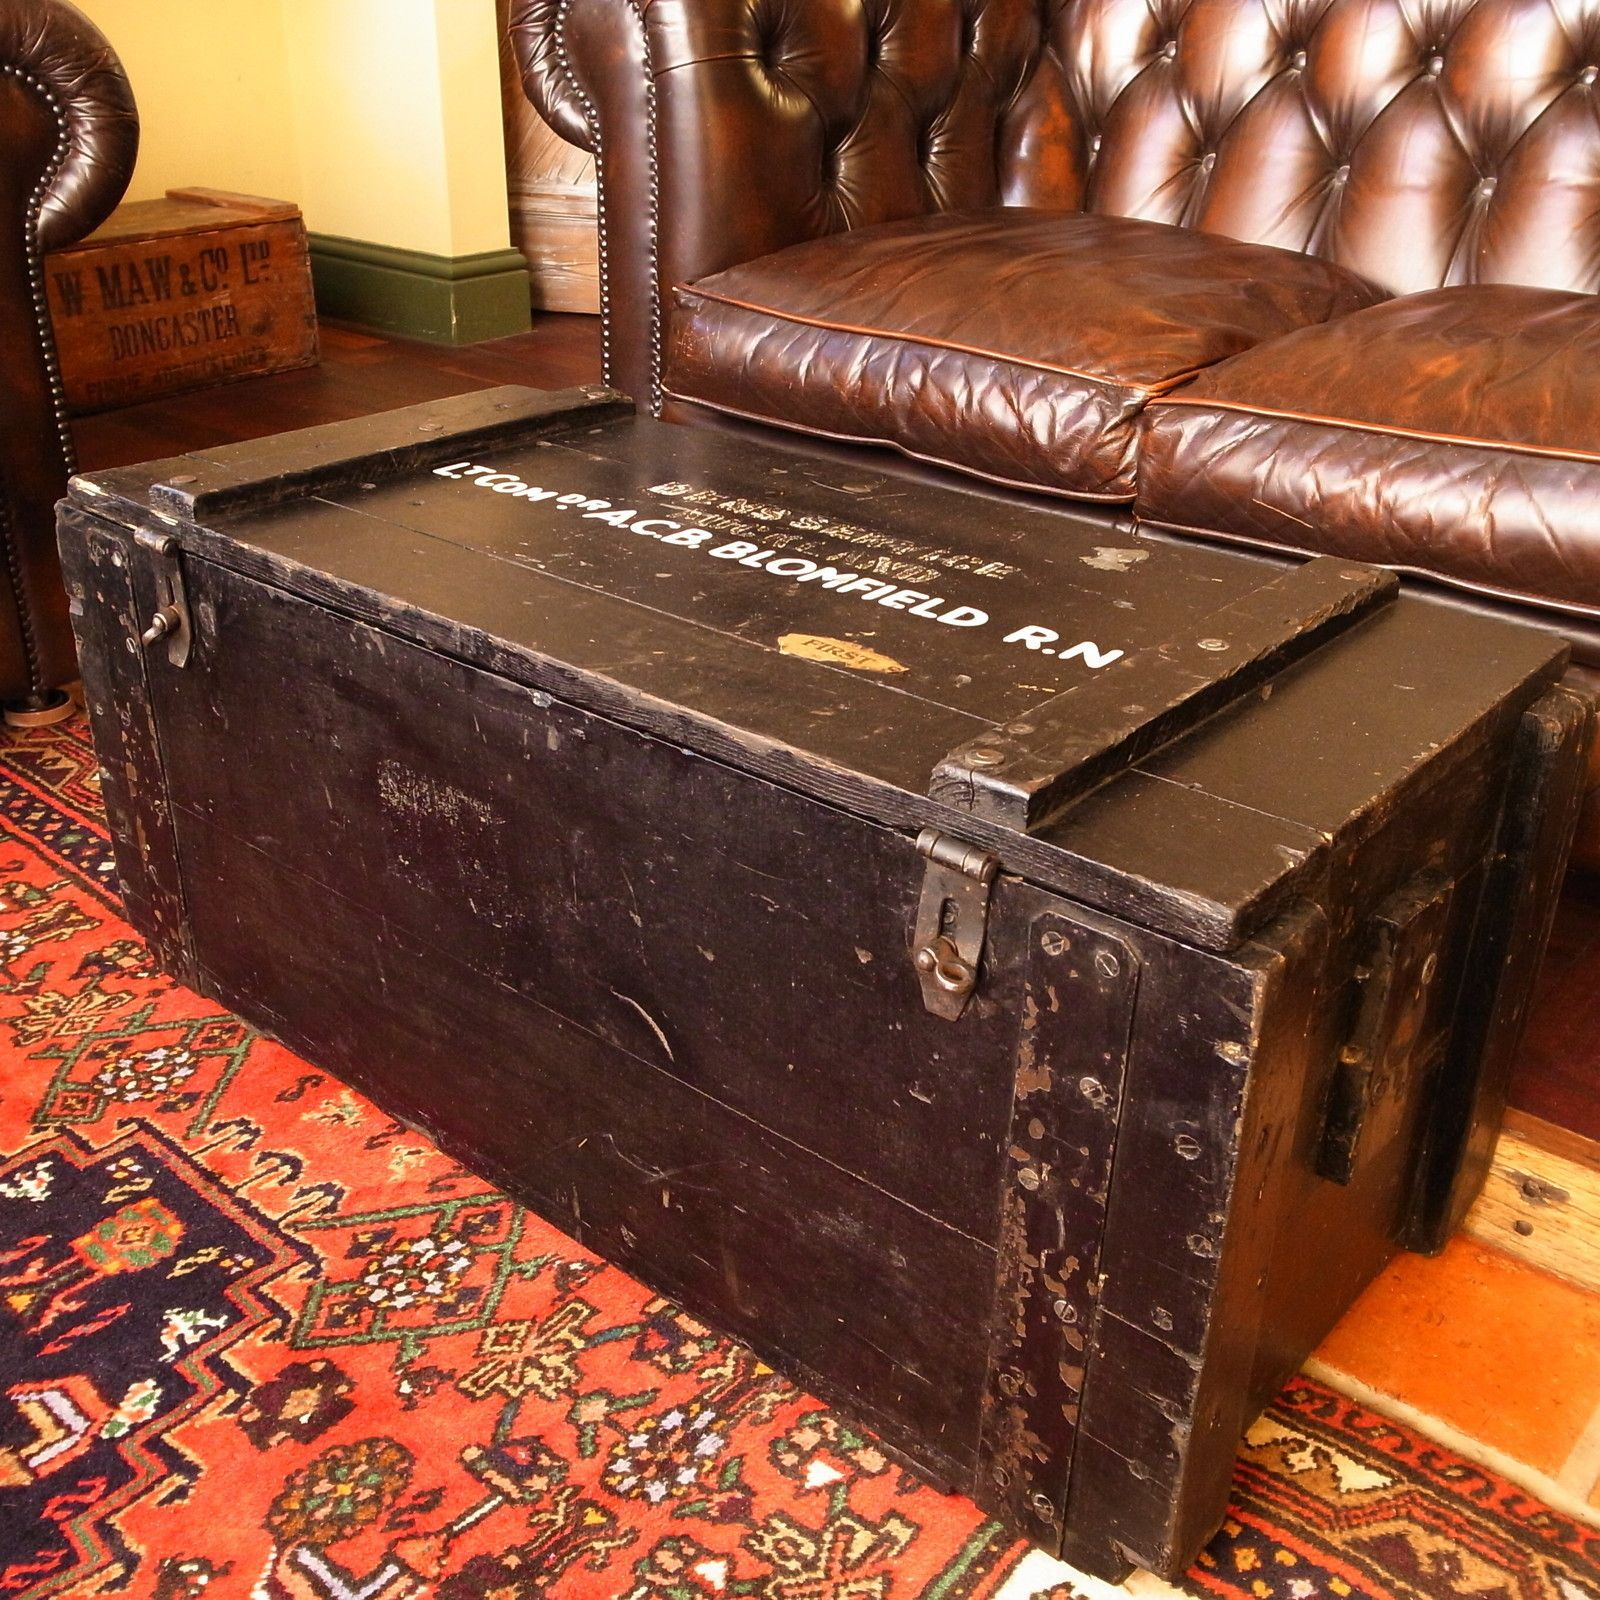 VINTAGE WWII military NAVAL sea chest trunk RUSTIC plank COFFEE